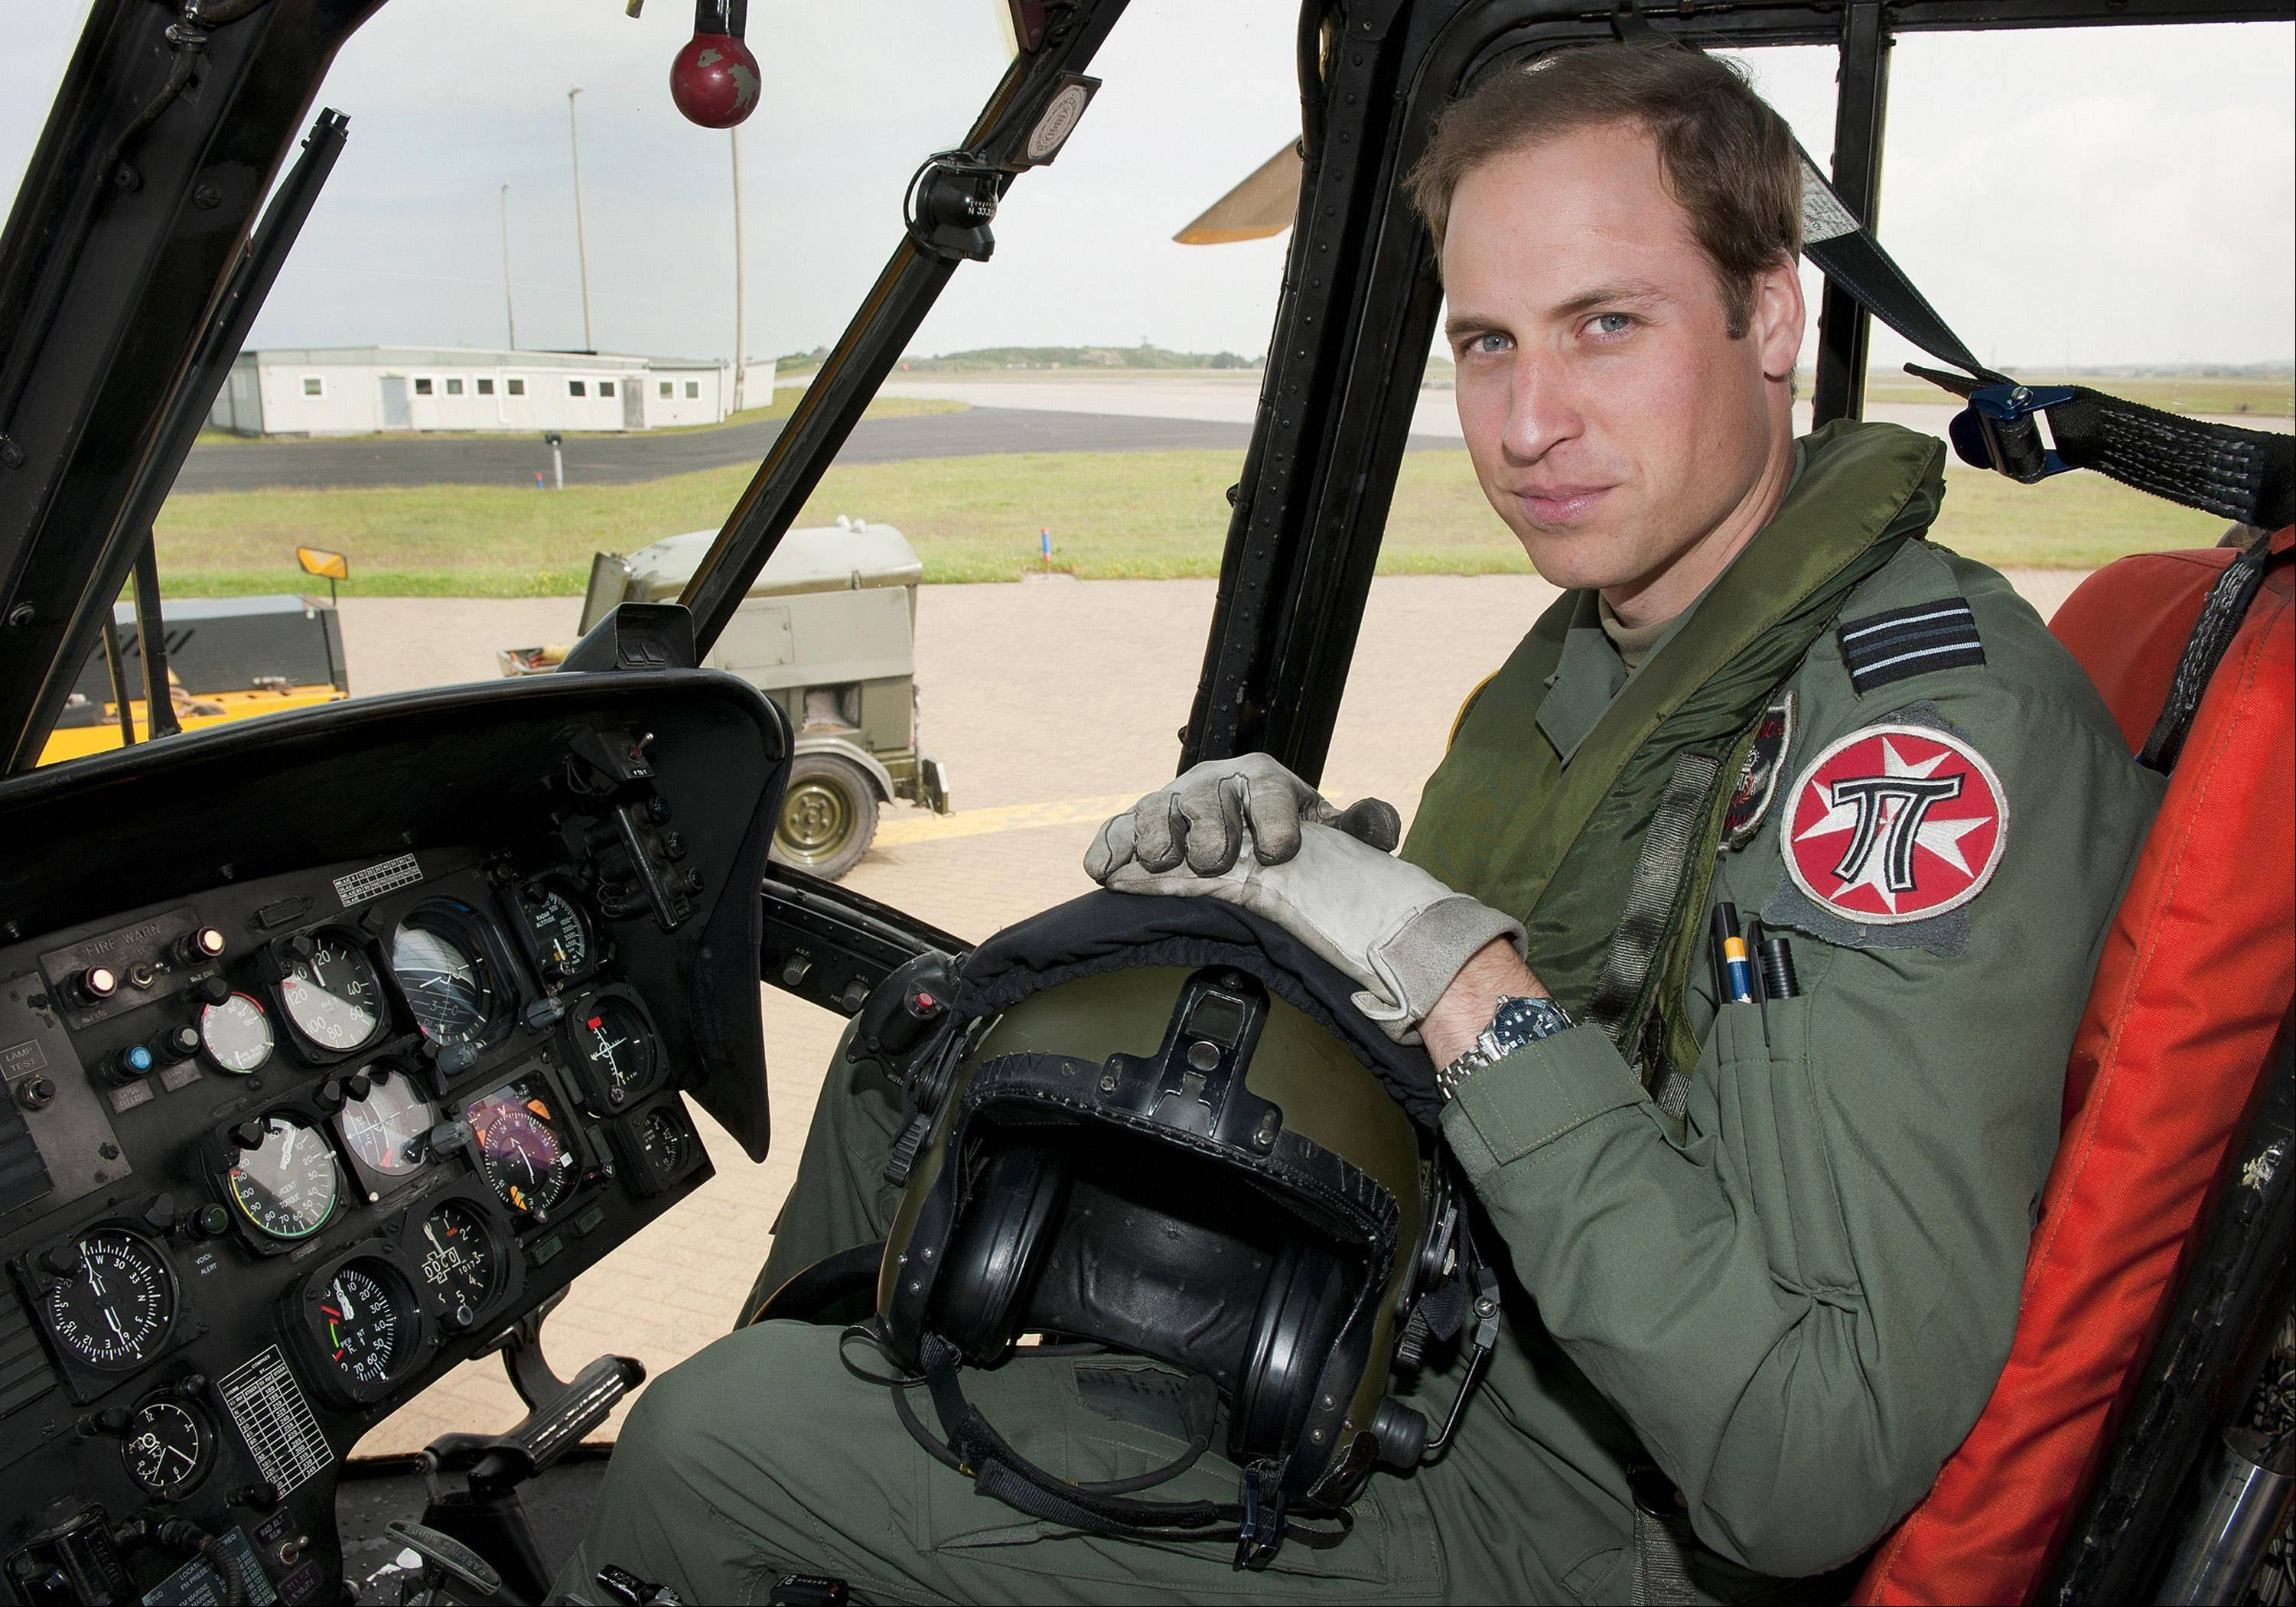 Britain's Prince William has finished his tour of duty as a Royal Air Force search-and-rescue helicopter pilot and has left operational service with the British military to focus on royal duties and charity work, royal officials said Thursday, Sept 12, 2013.